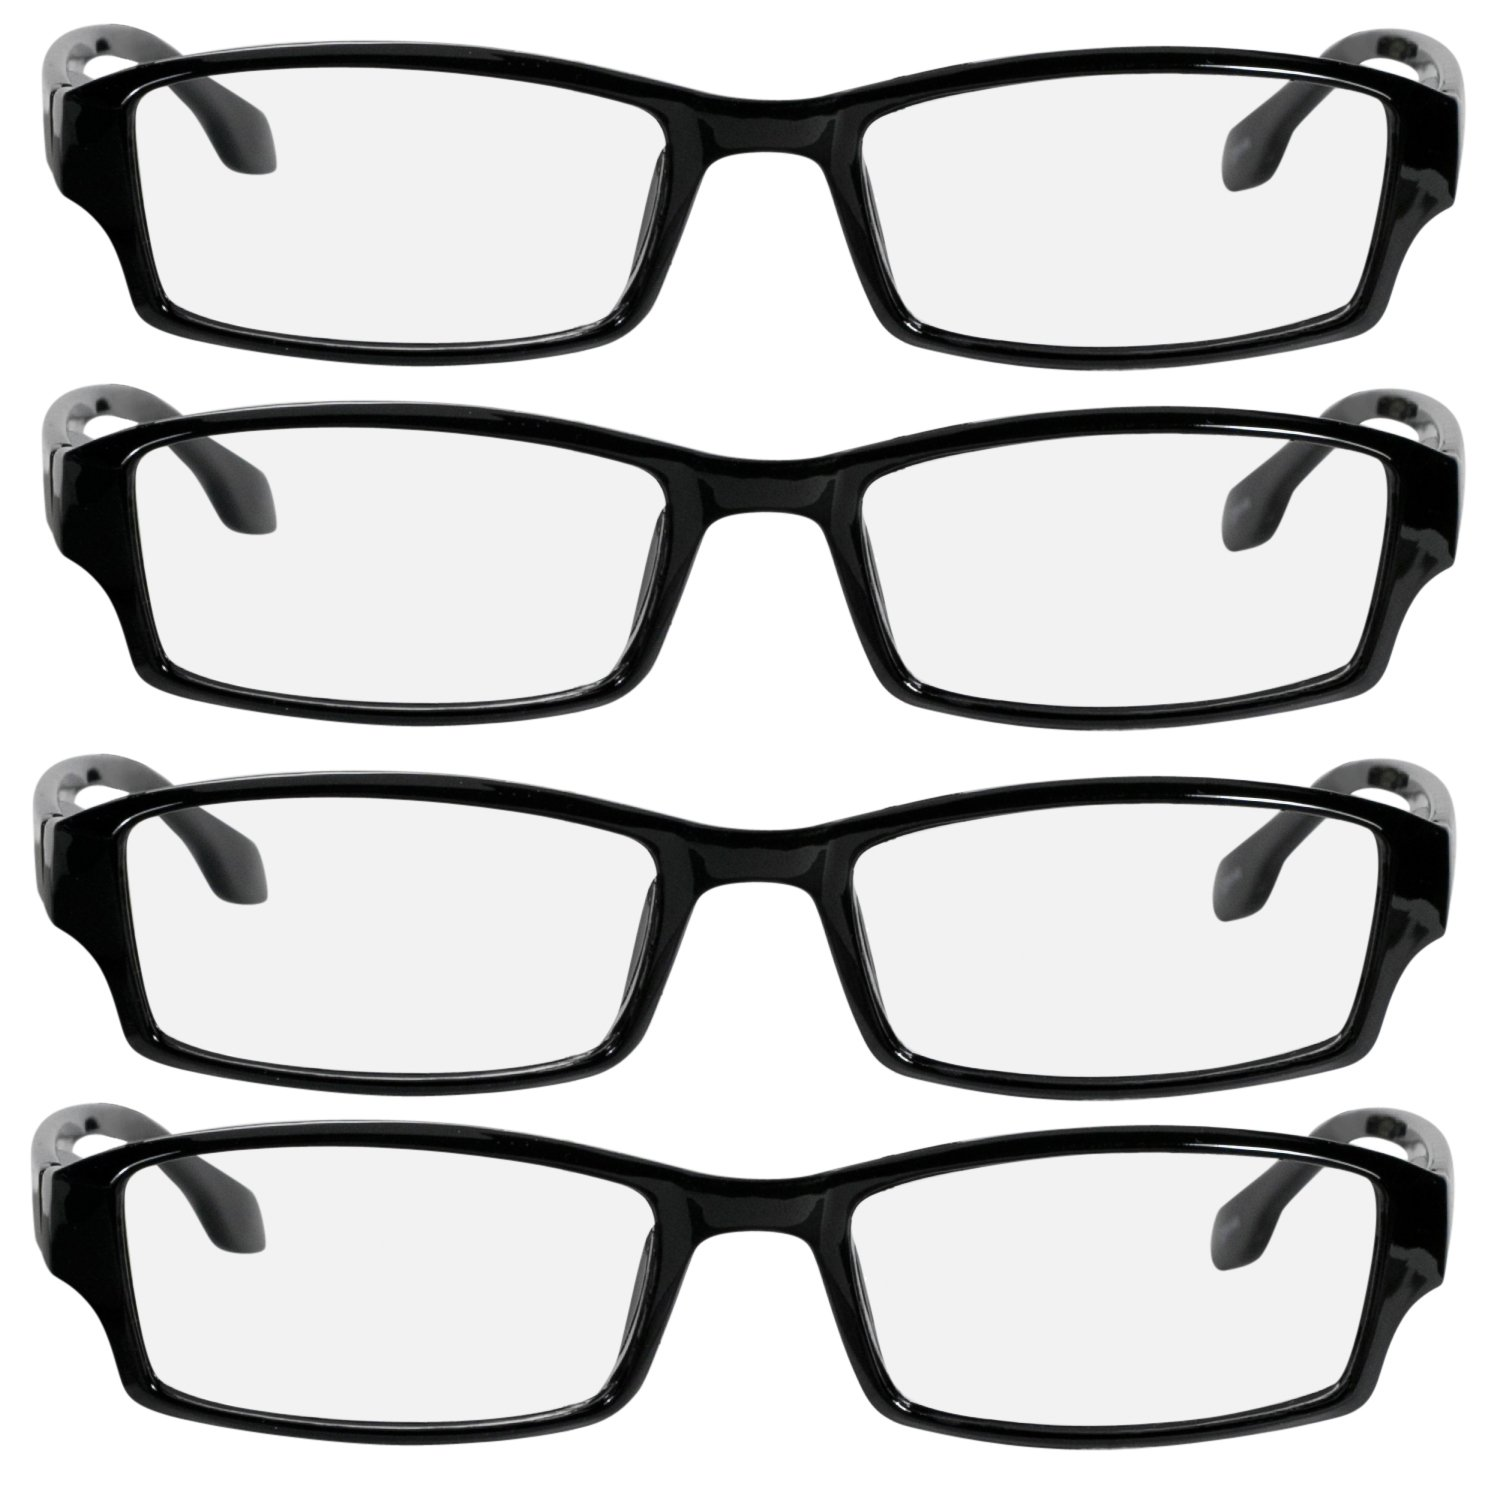 7d9ca91a8c69 Amazon.com: Reading Glasses 1.00 _ Best 4 Pack for Men and Women _ Have a  Stylish Look and Crystal Clear Vision When You Need It! _ Comfort Spring  Arms ...